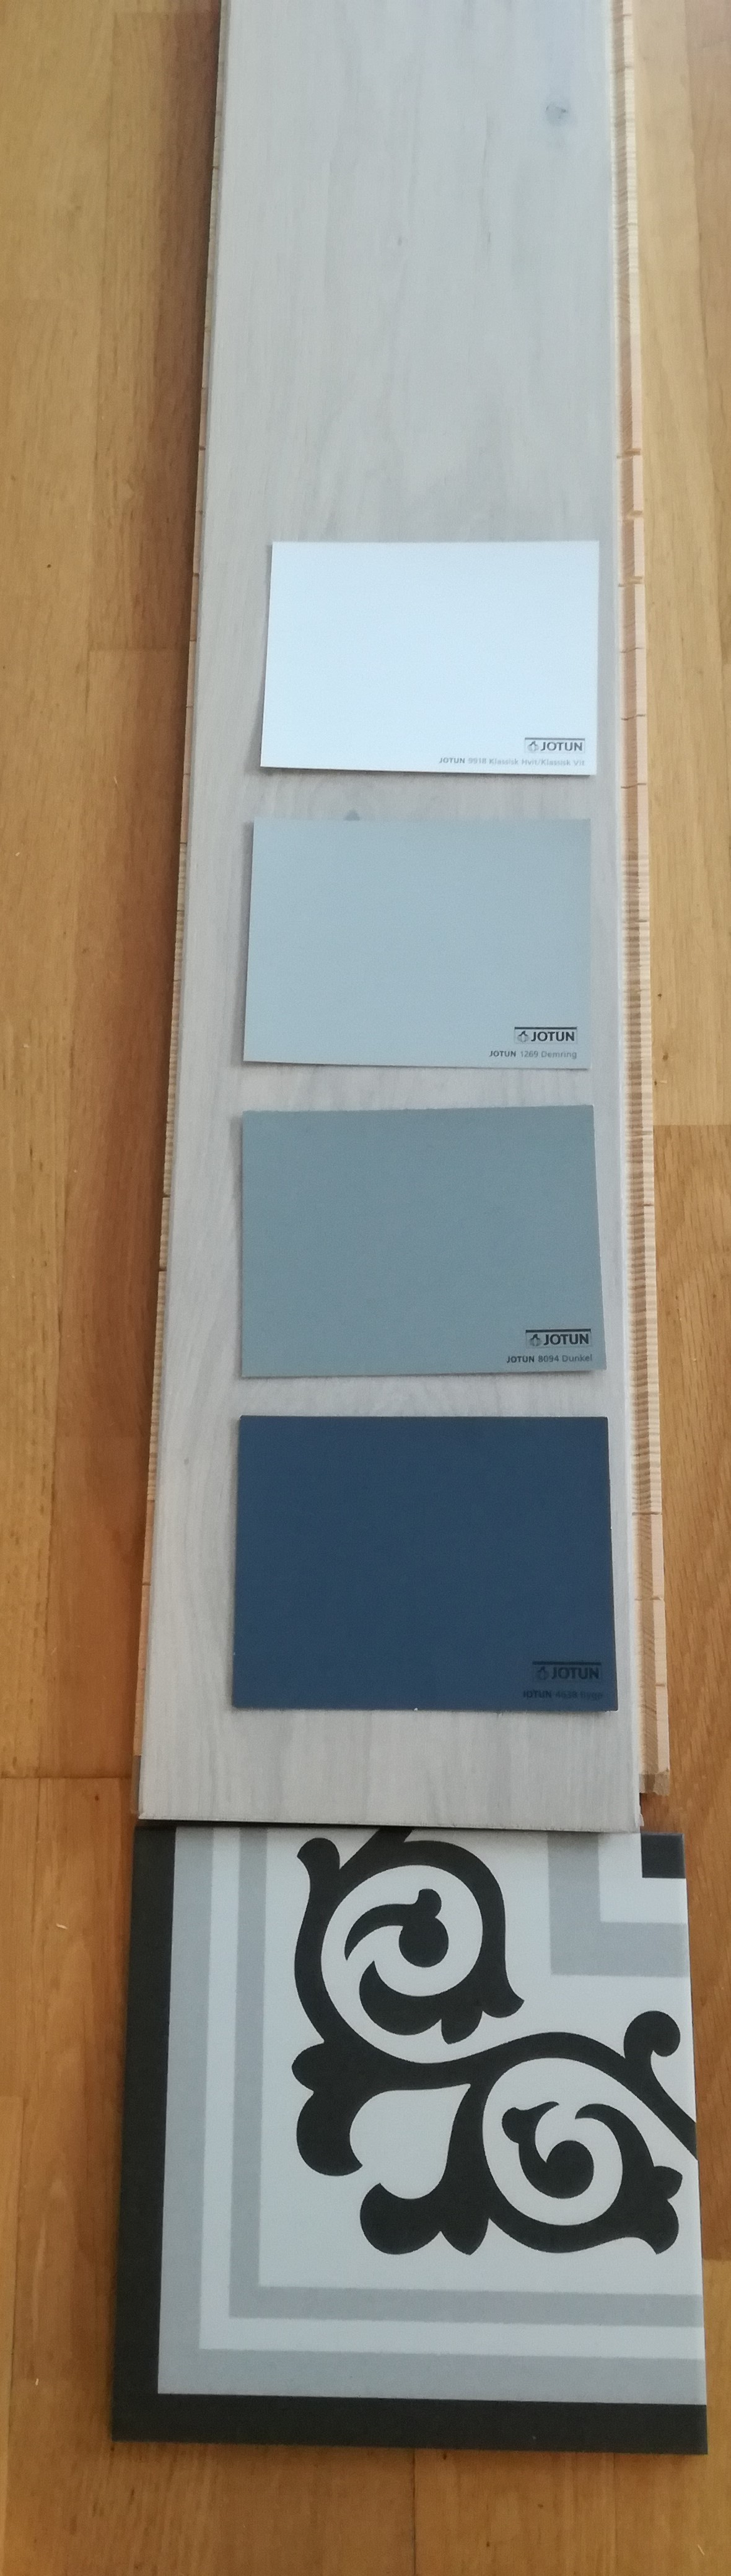 Jotun lady pure color i fargen 4638 byge http